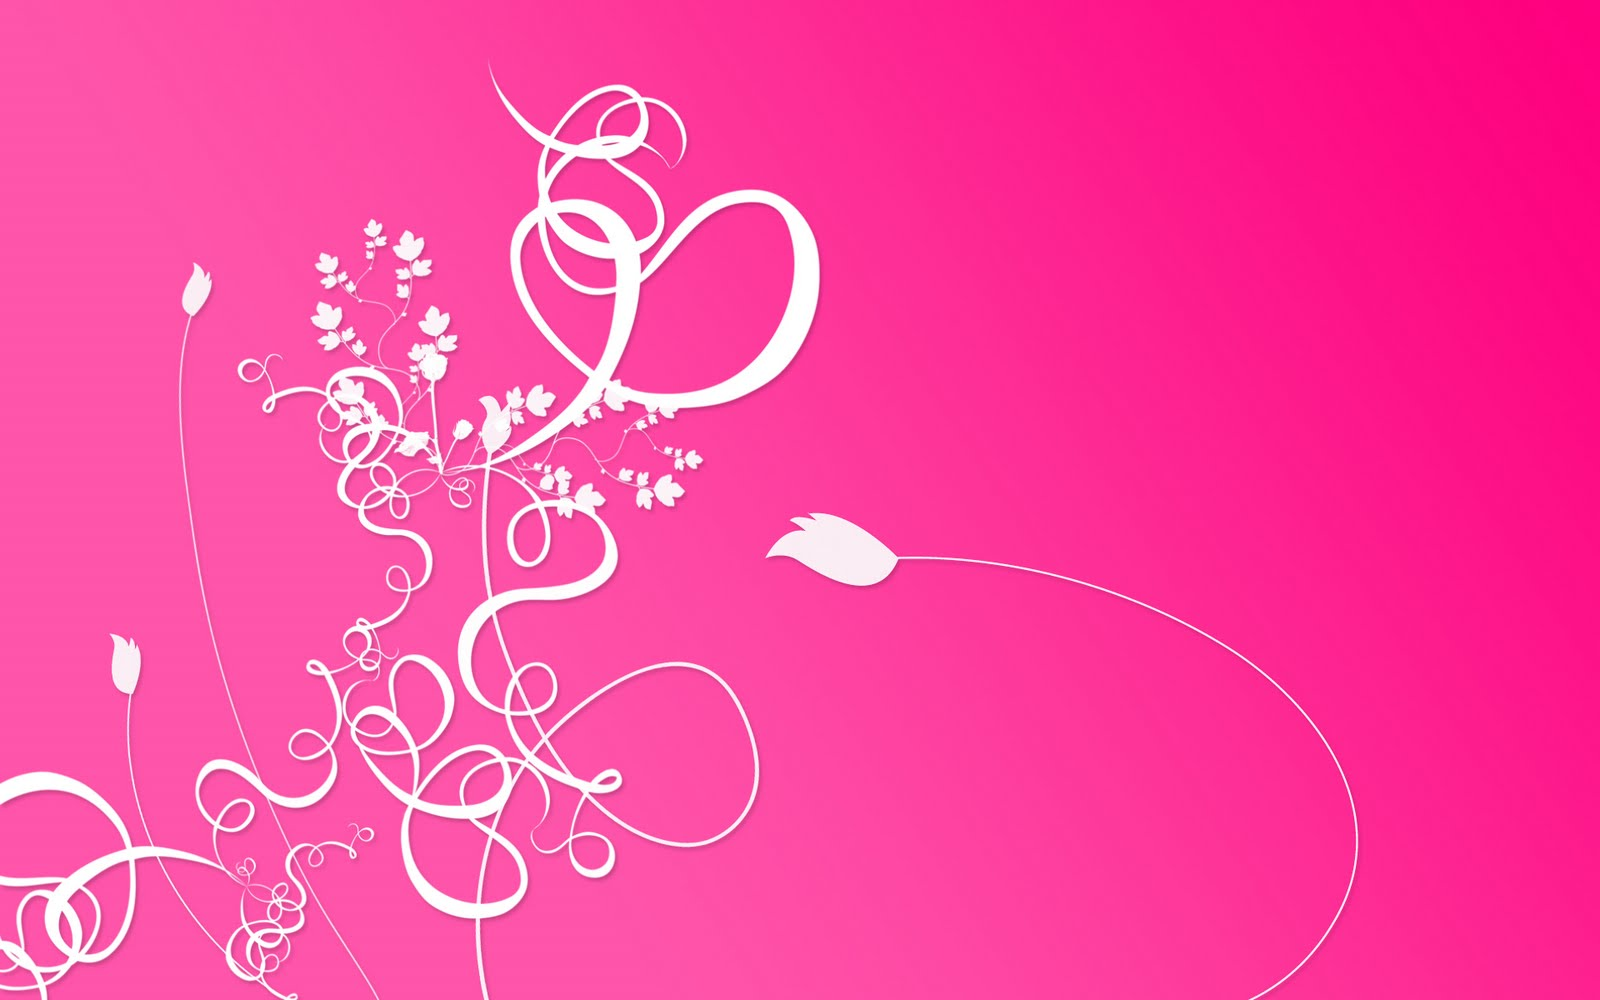 HD pink wallpapers 1600x1000